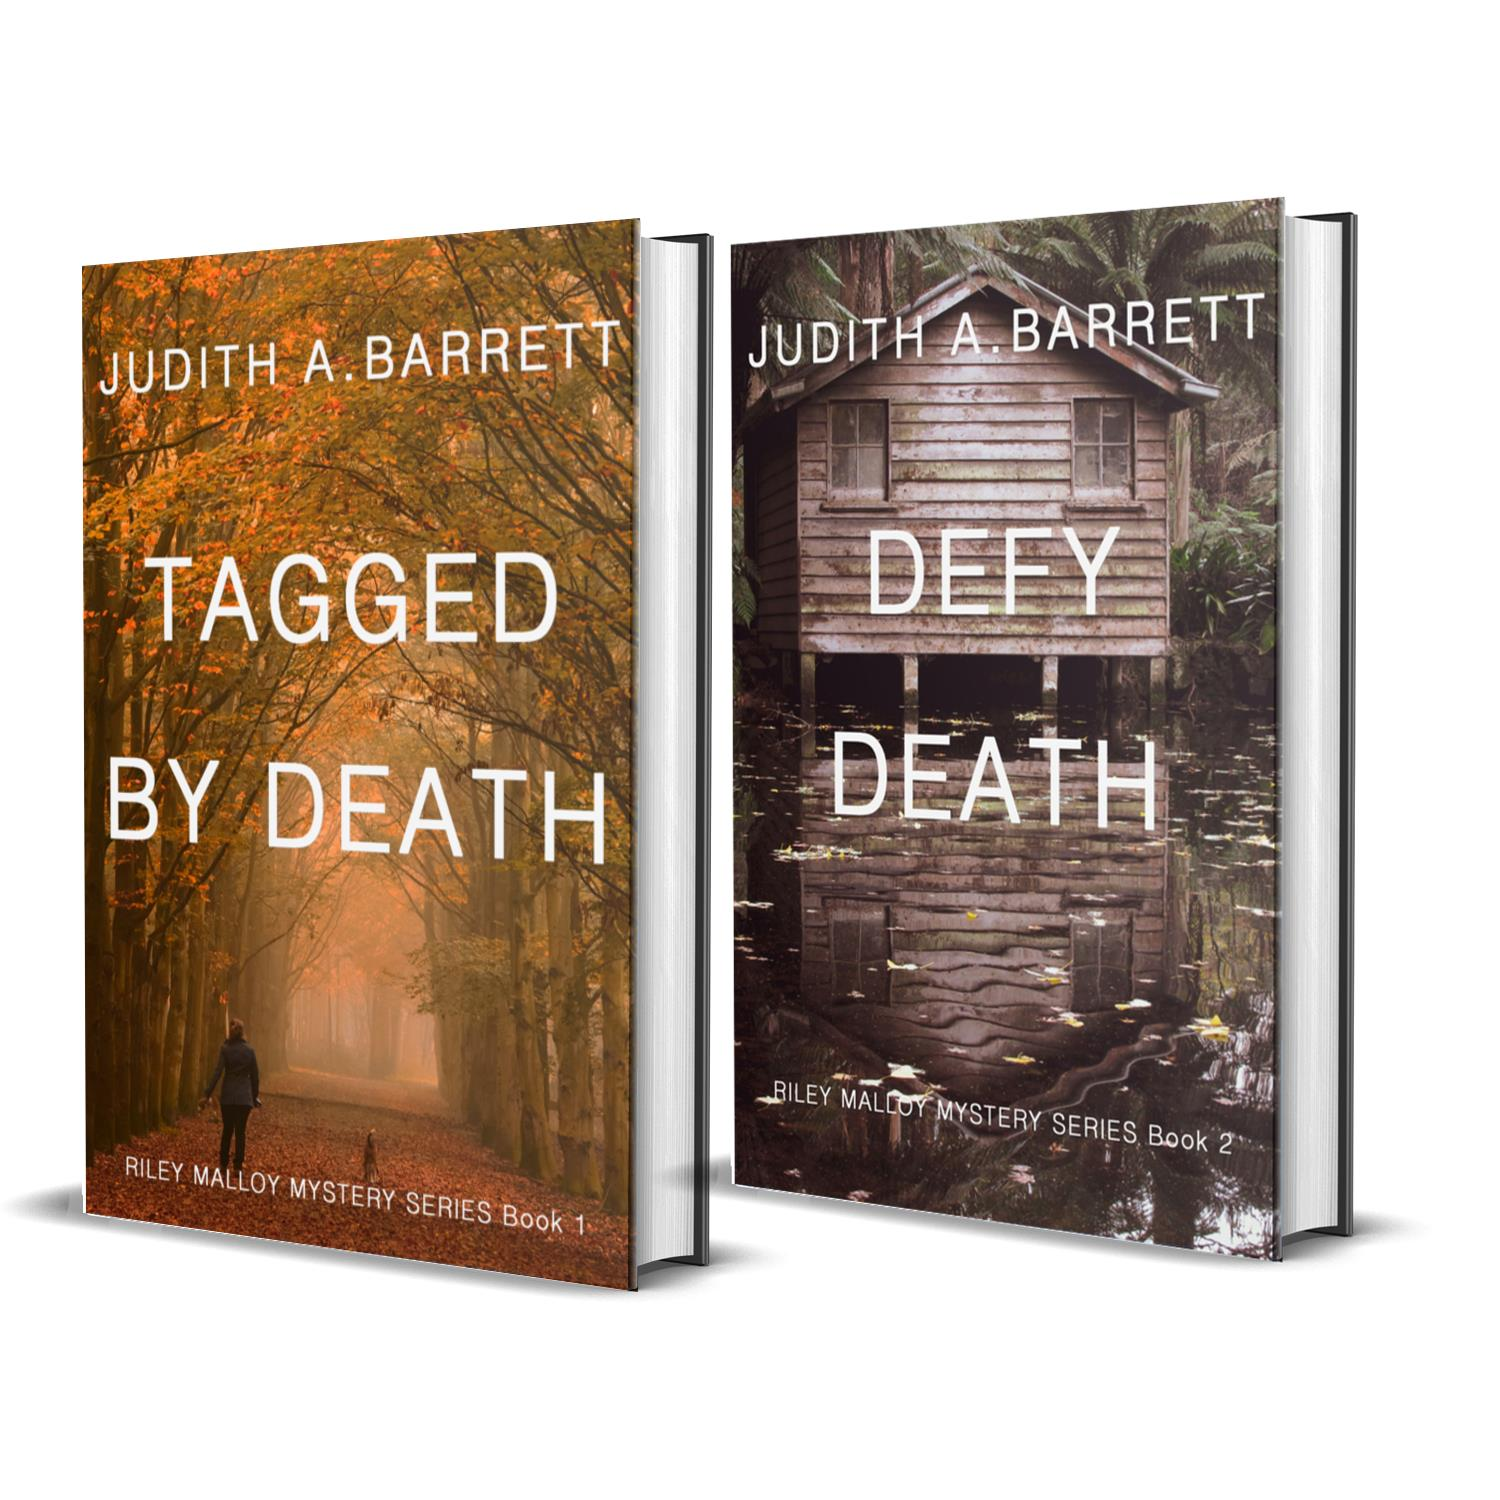 RILEY MALLOY MYSTERY SERIES BOOKS 1 and 2 August 8 2021